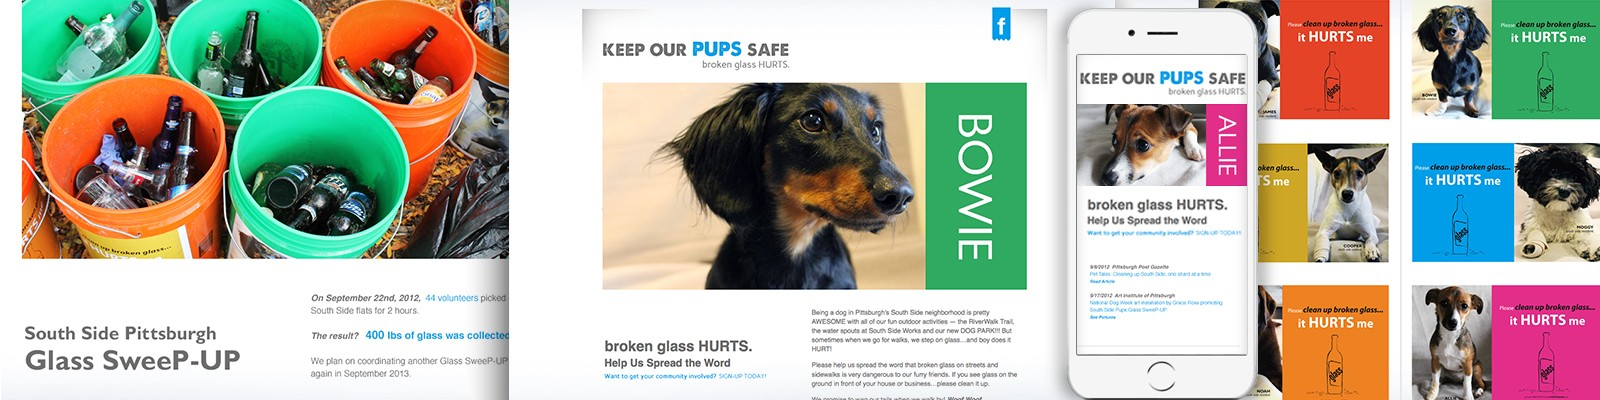 Keep Our Pups Safe